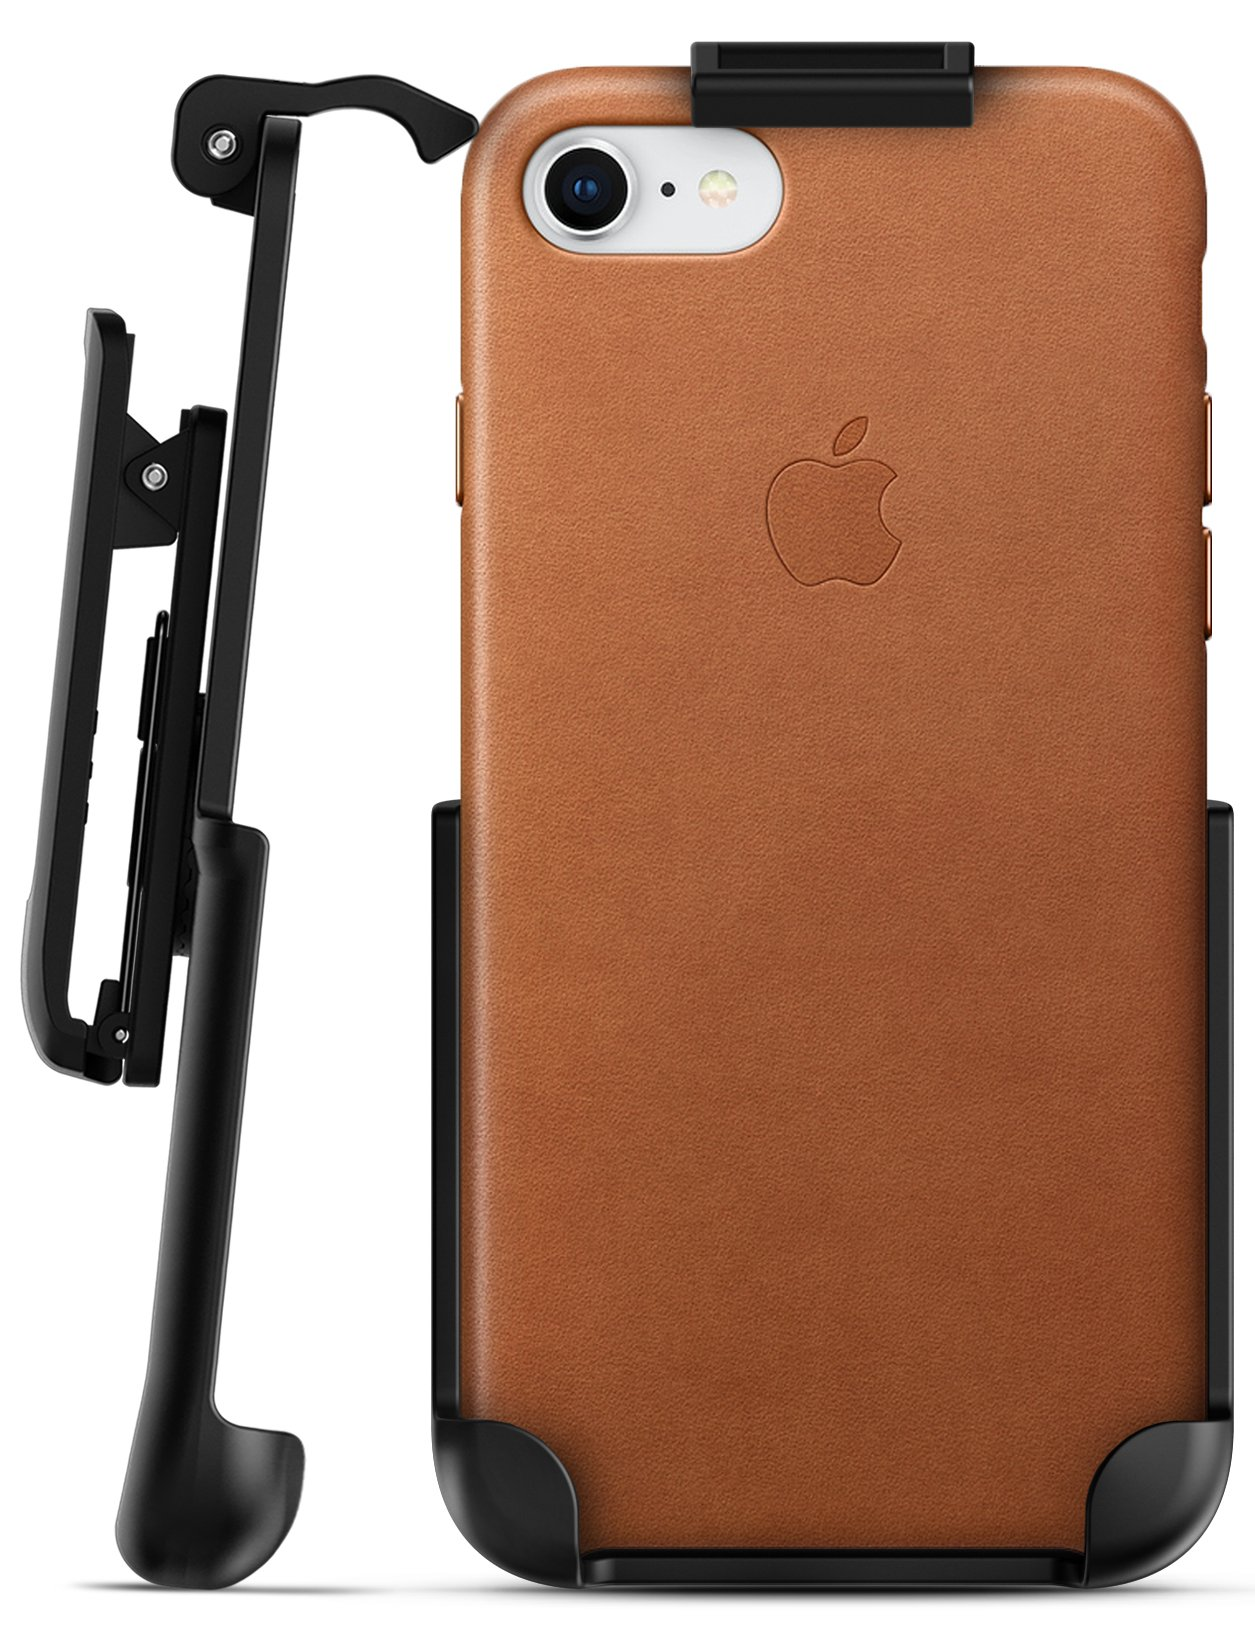 new products 4ea39 aad90 iPhone 8 Apple Leather Holster Black